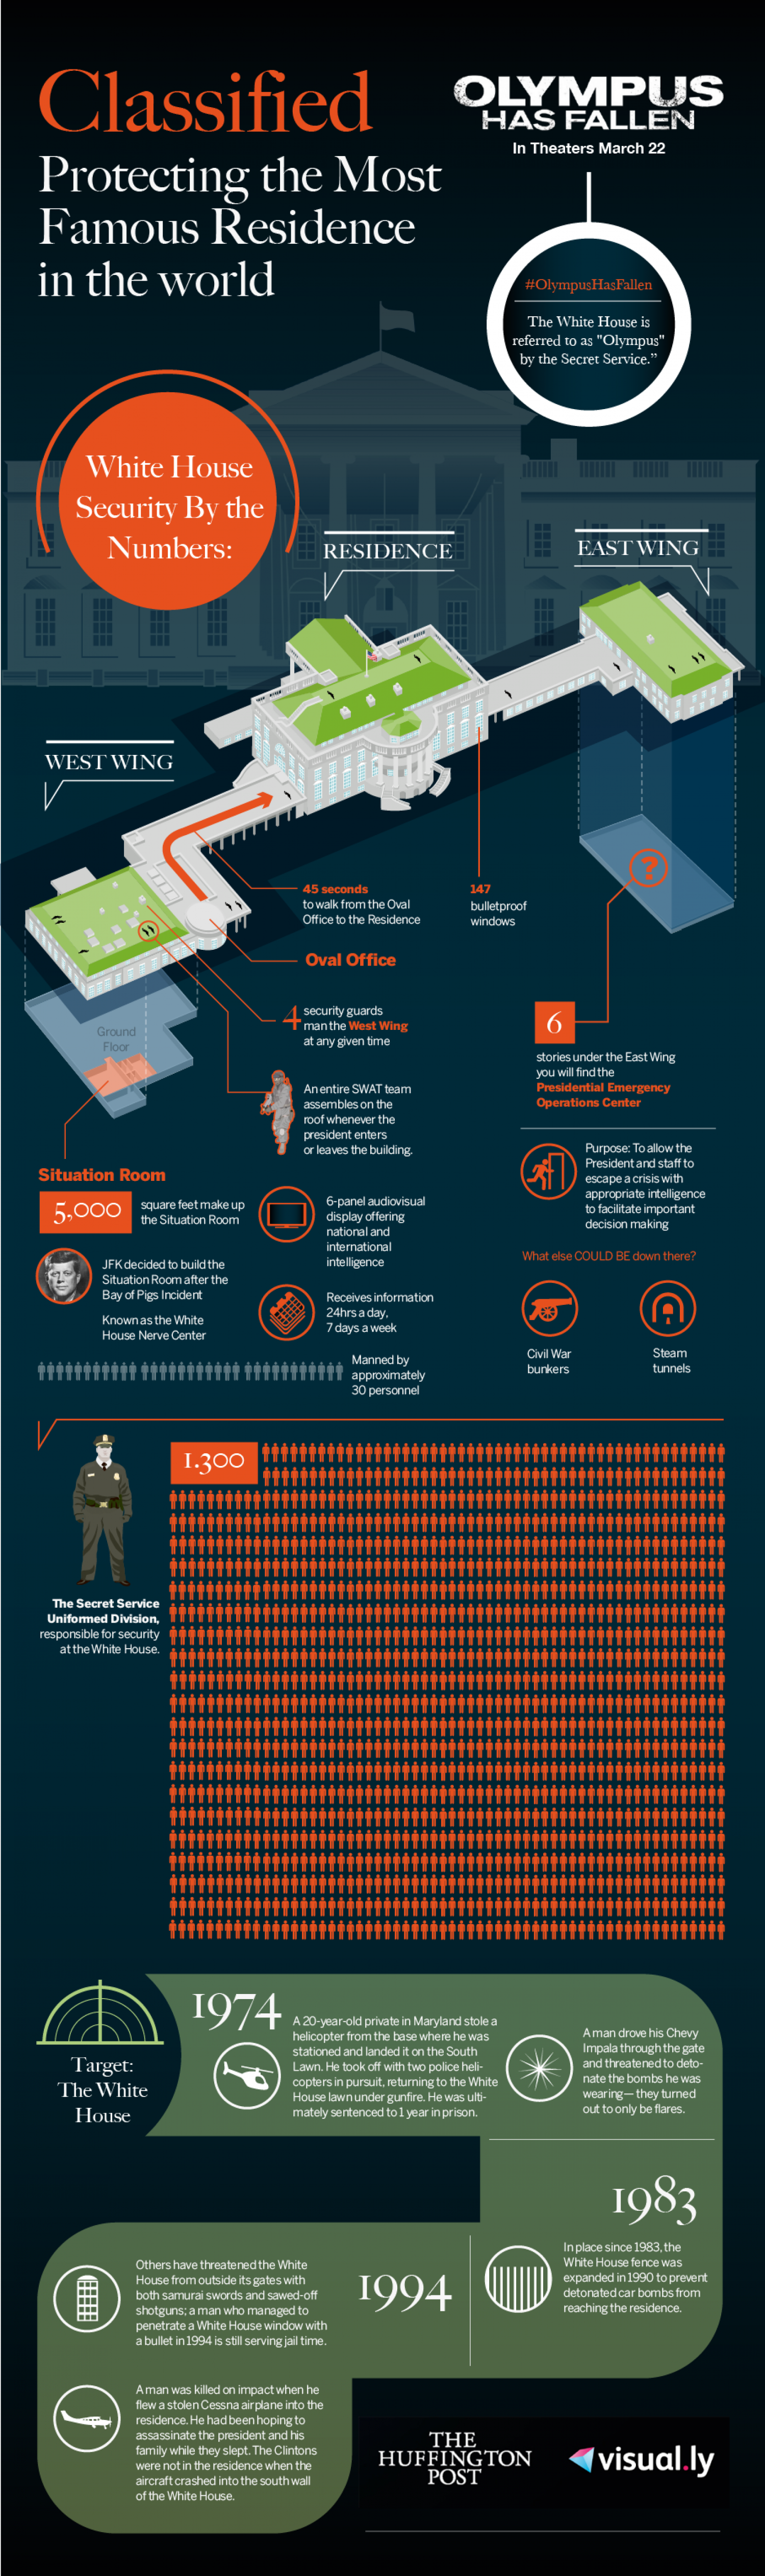 Classified: Protecting the Most Famous Residence in the World Infographic